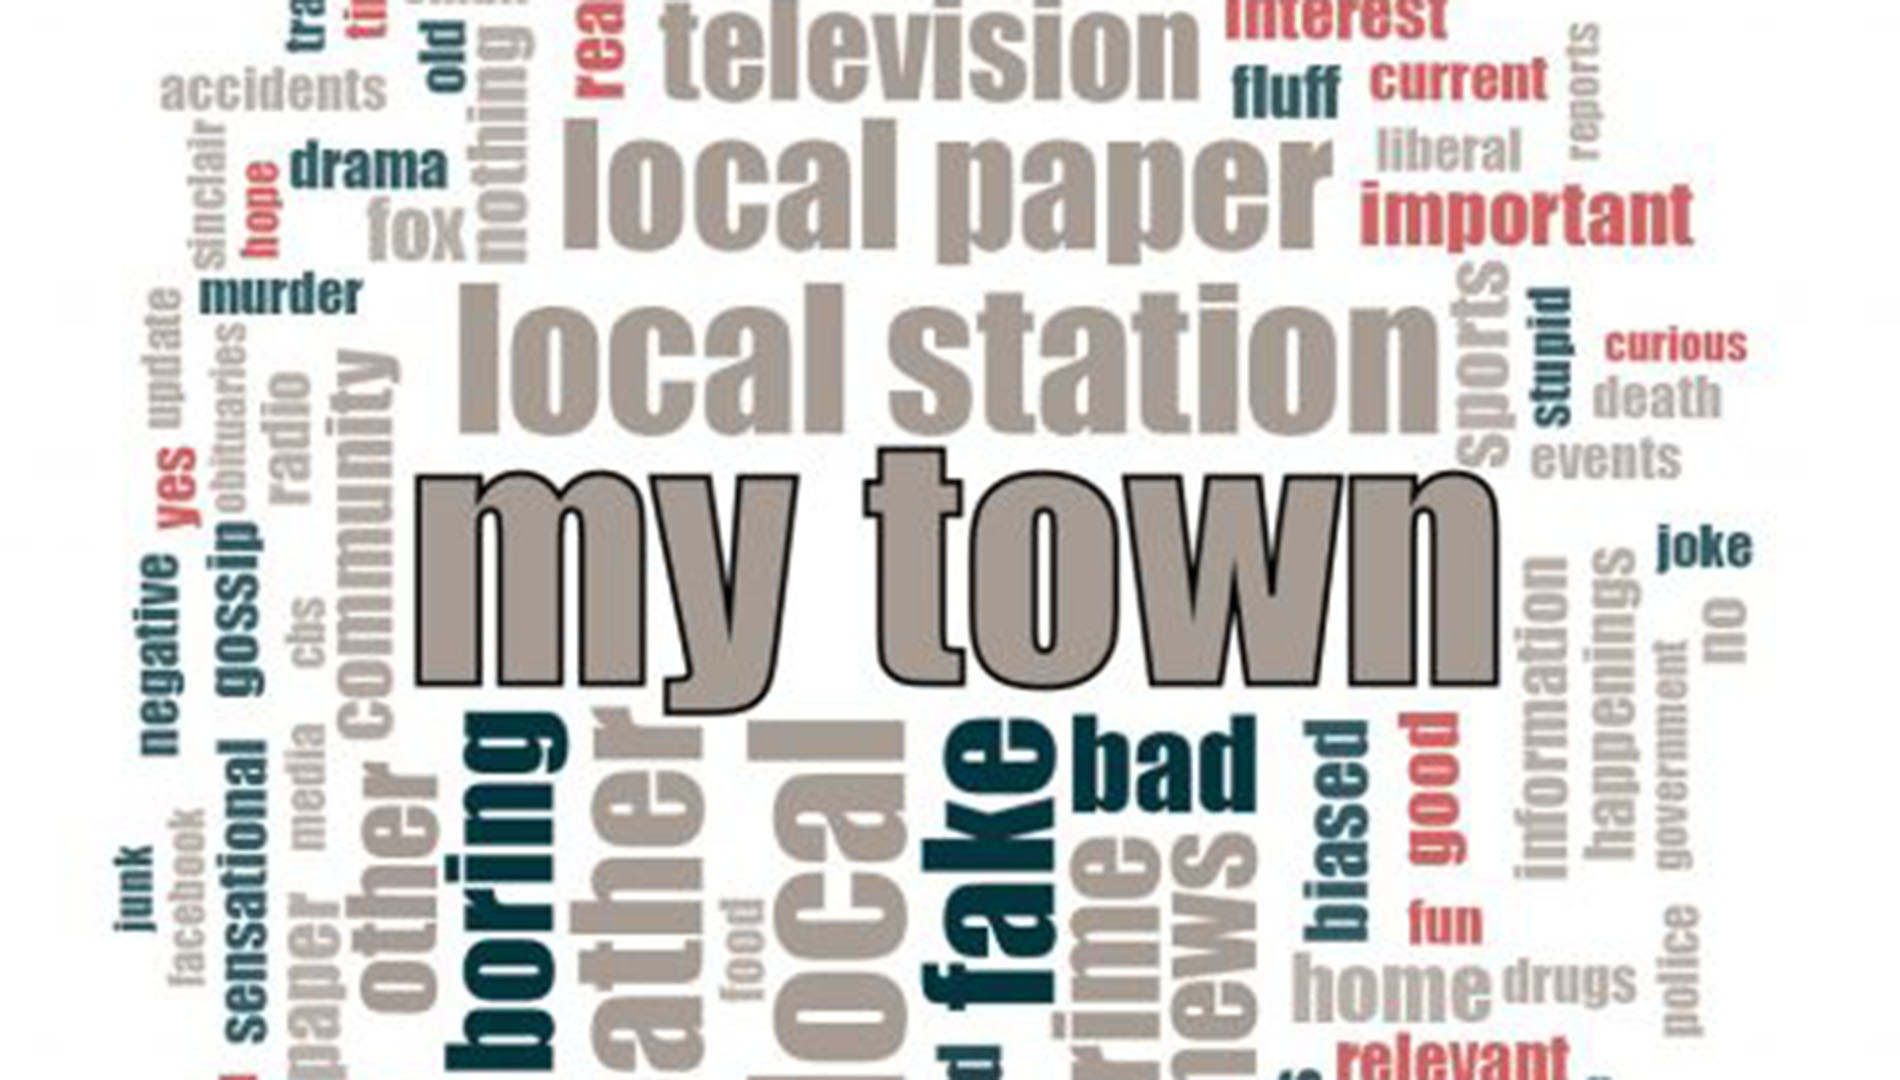 Neutral feelings about local news present opportunity to build trust